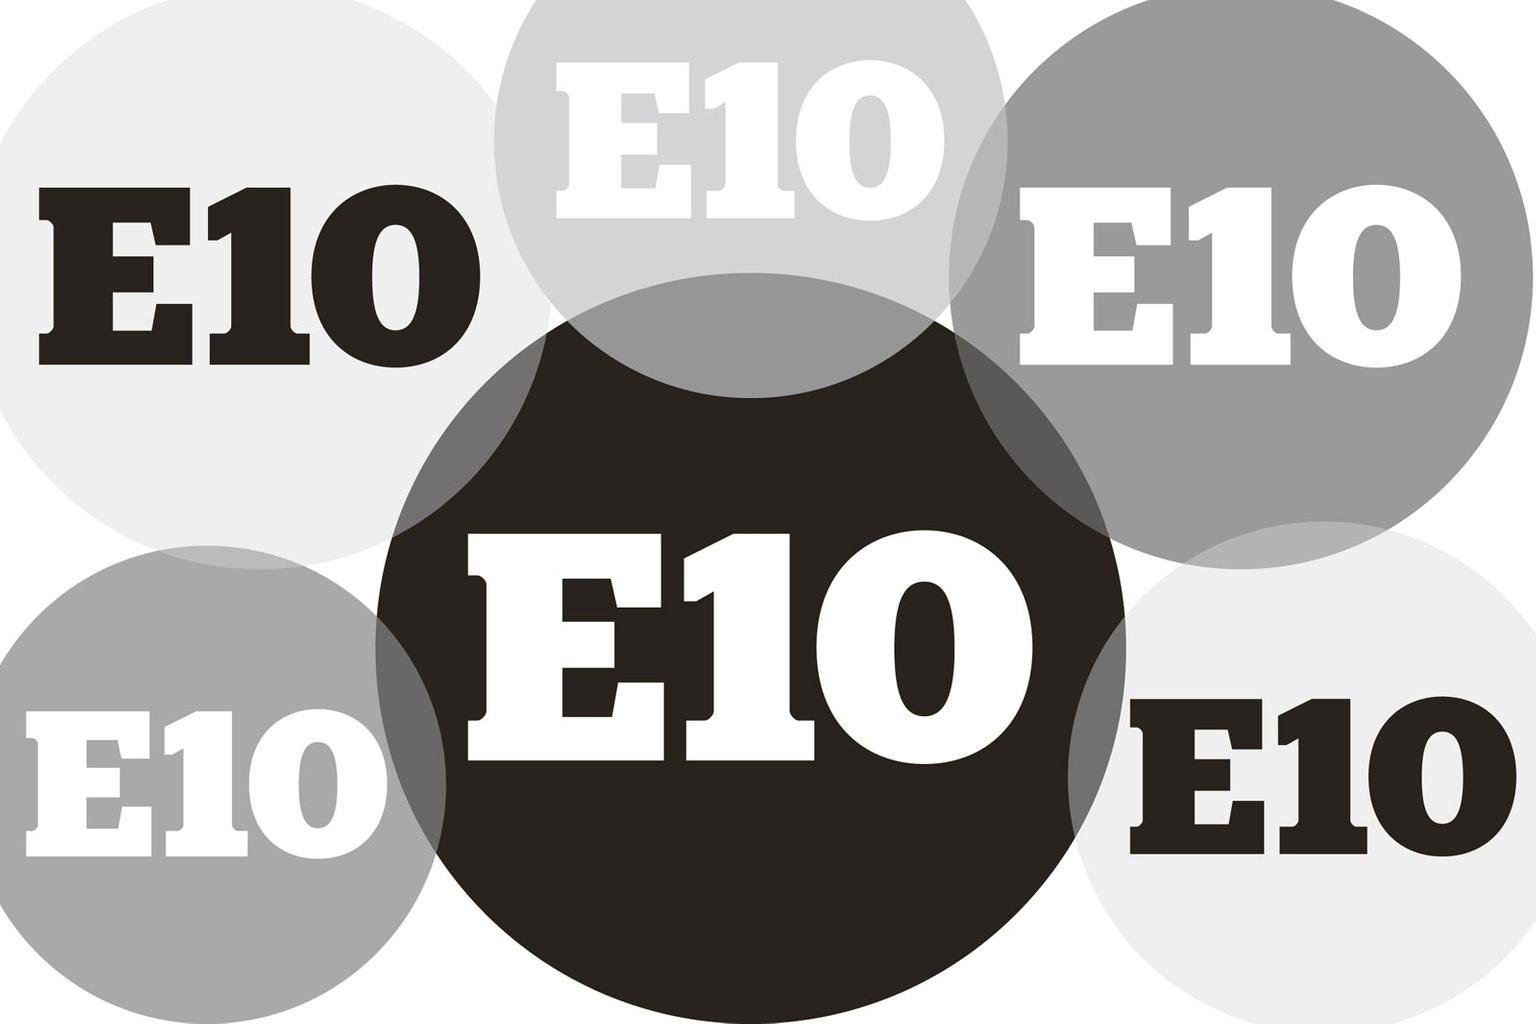 E10 petrol - your questions answered